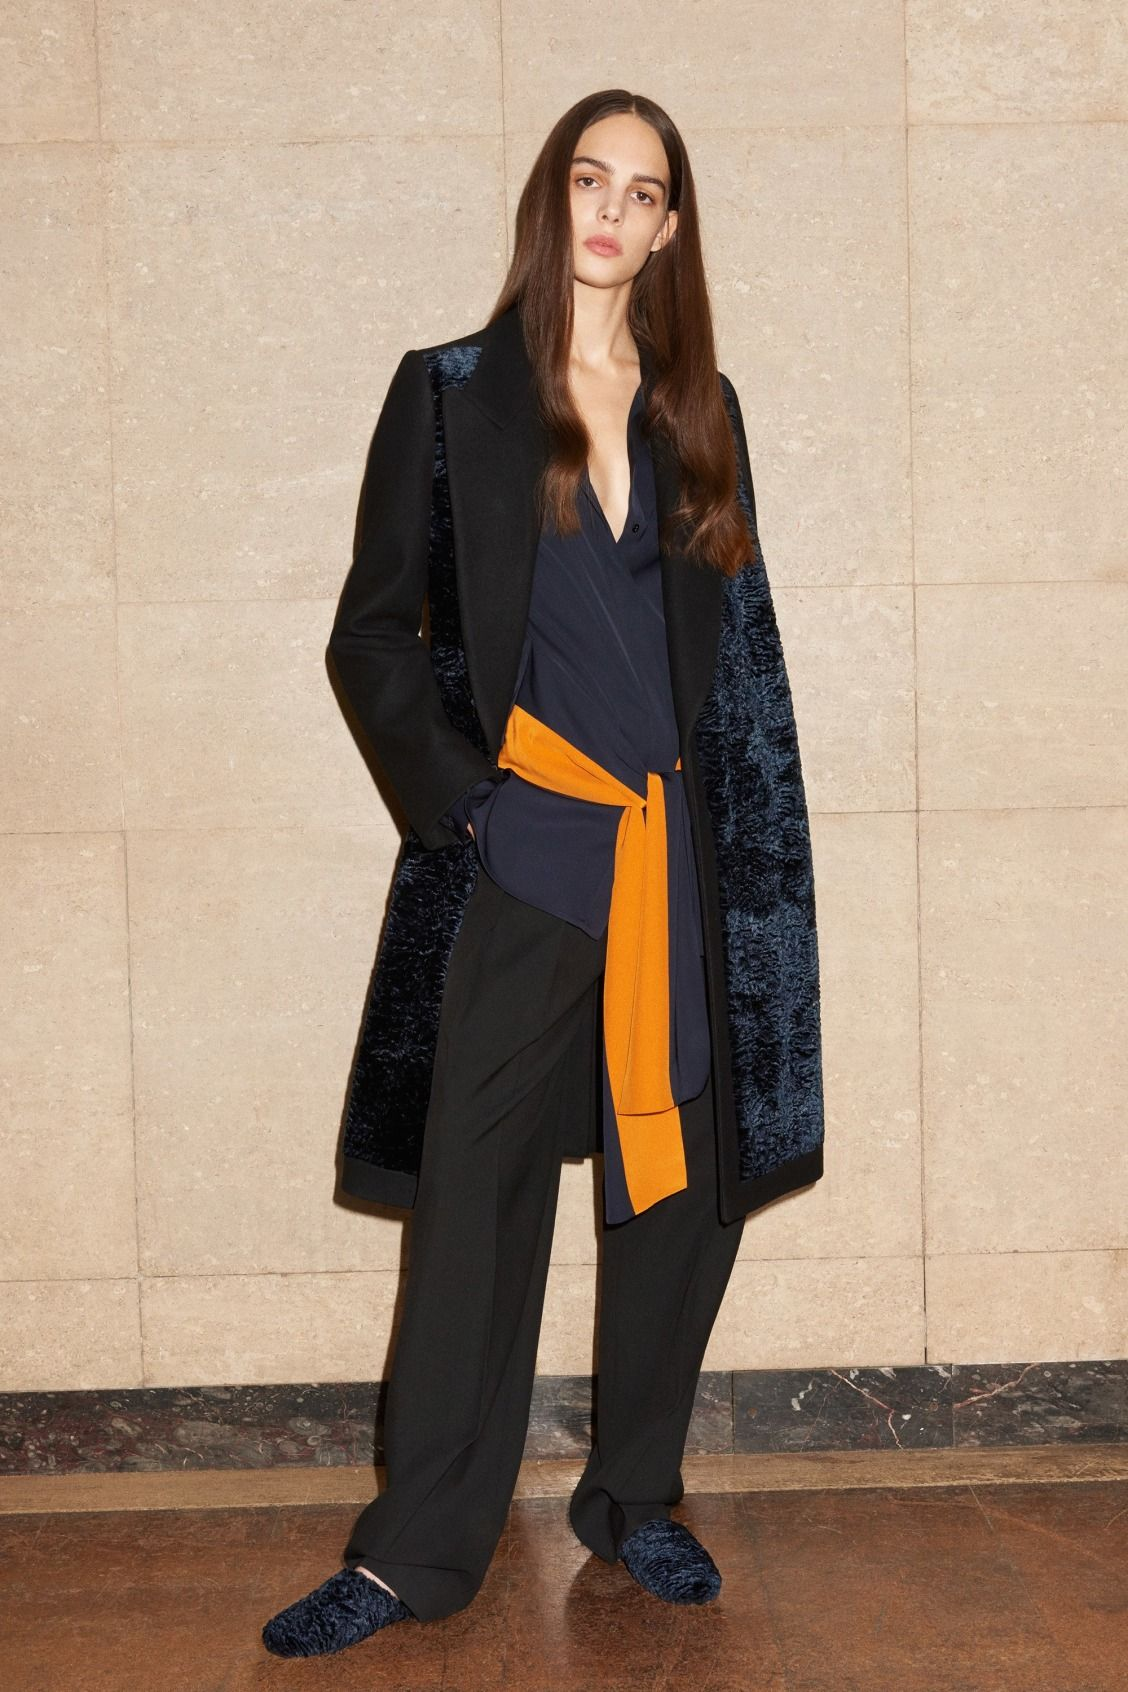 View the full Victoria Victoria Beckham Pre-Fall 2017 collection.